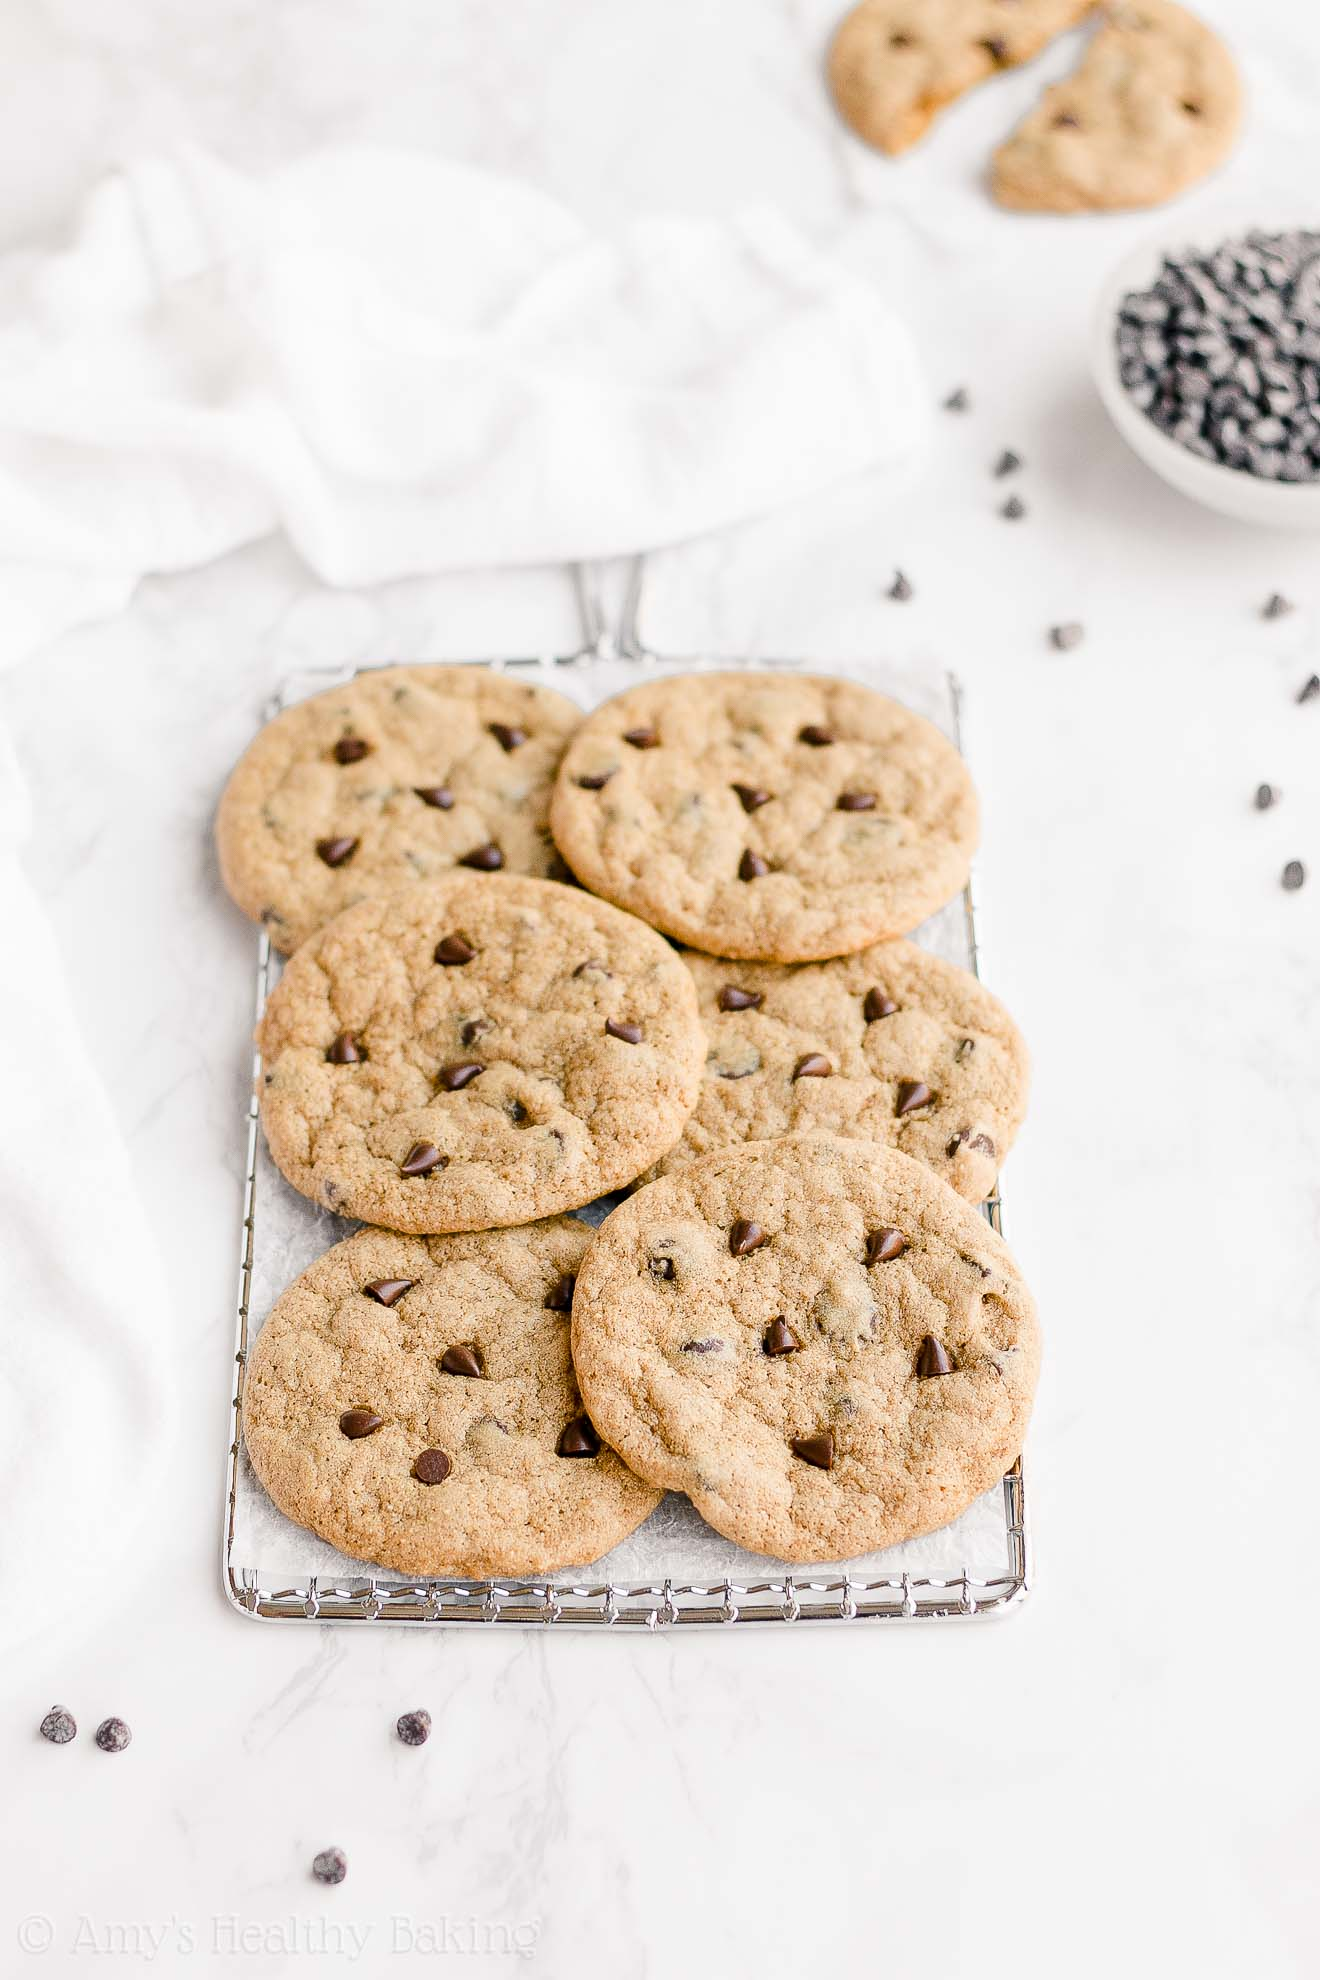 Healthy Low Calorie Vegan Chewy One-Bowl Chocolate Chip Cookies